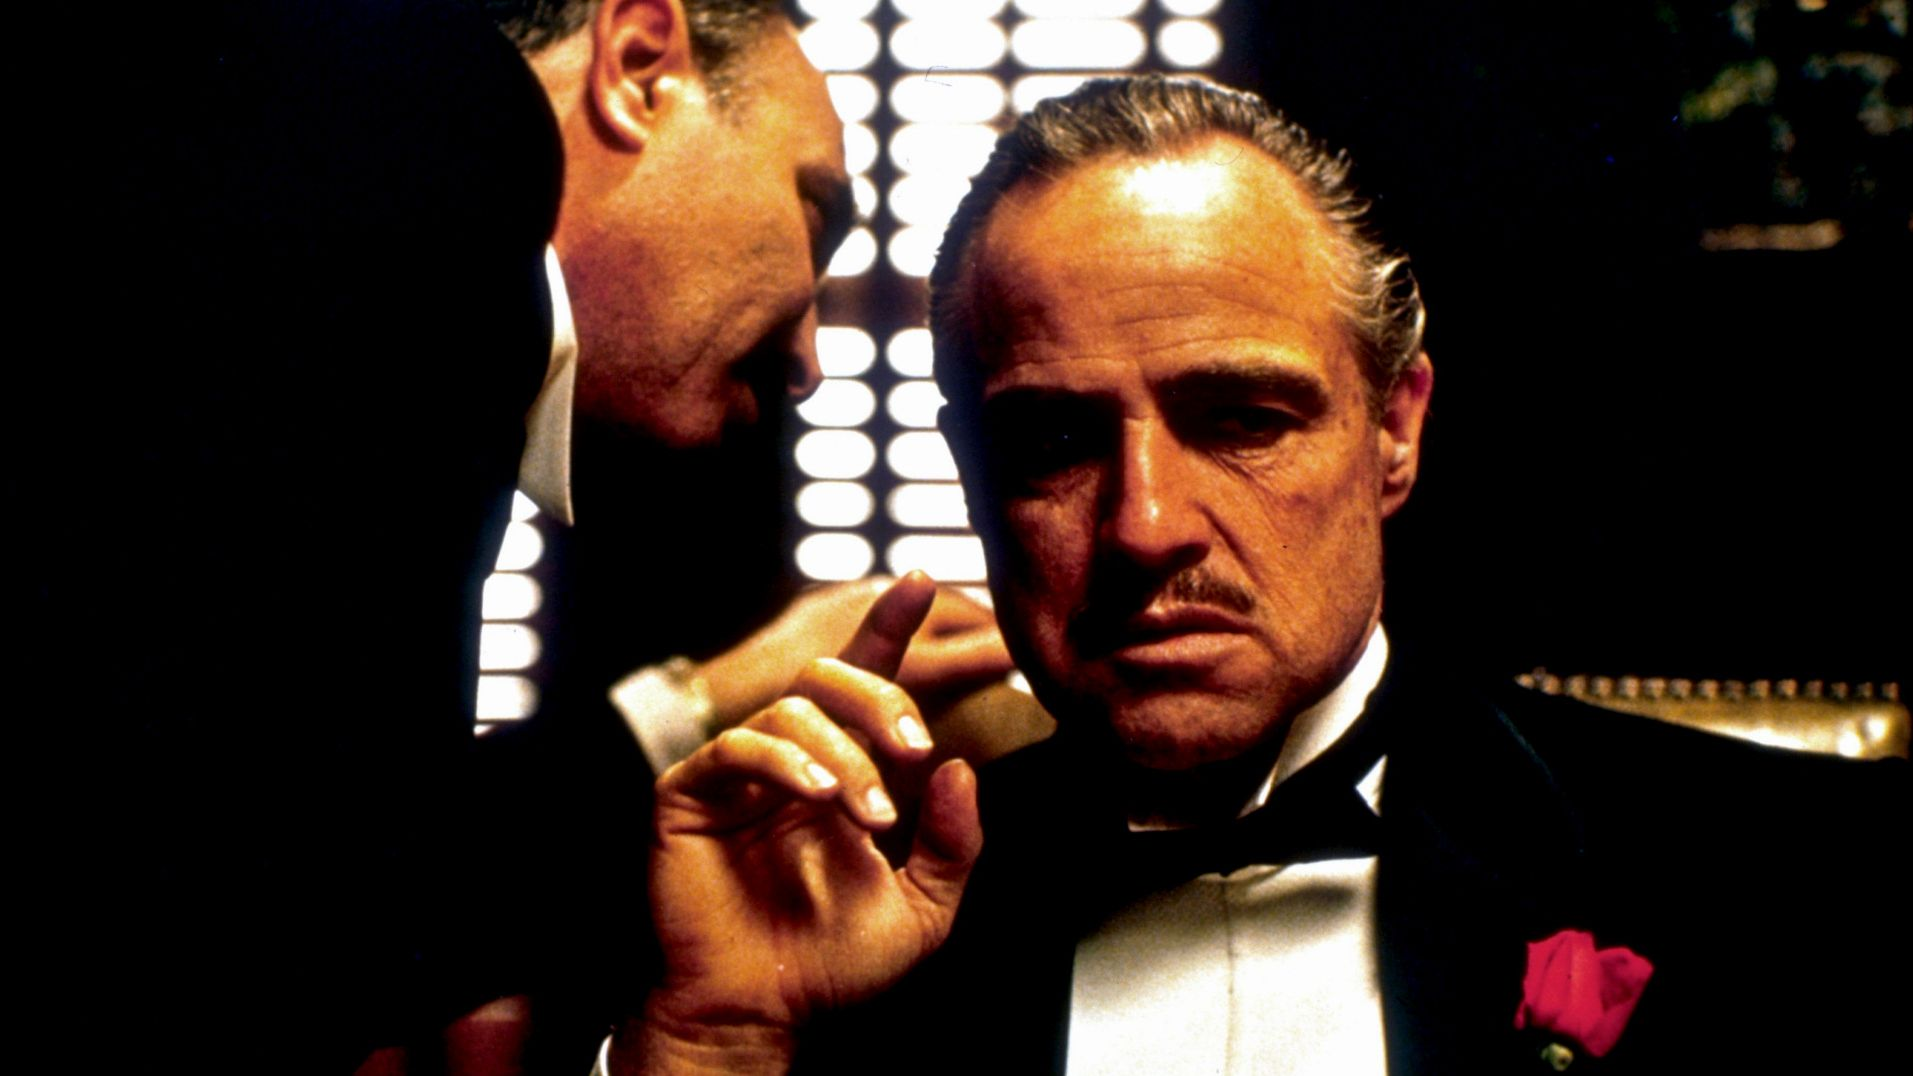 """I'm going to make him an offer he can't refuse."" - The Godf"